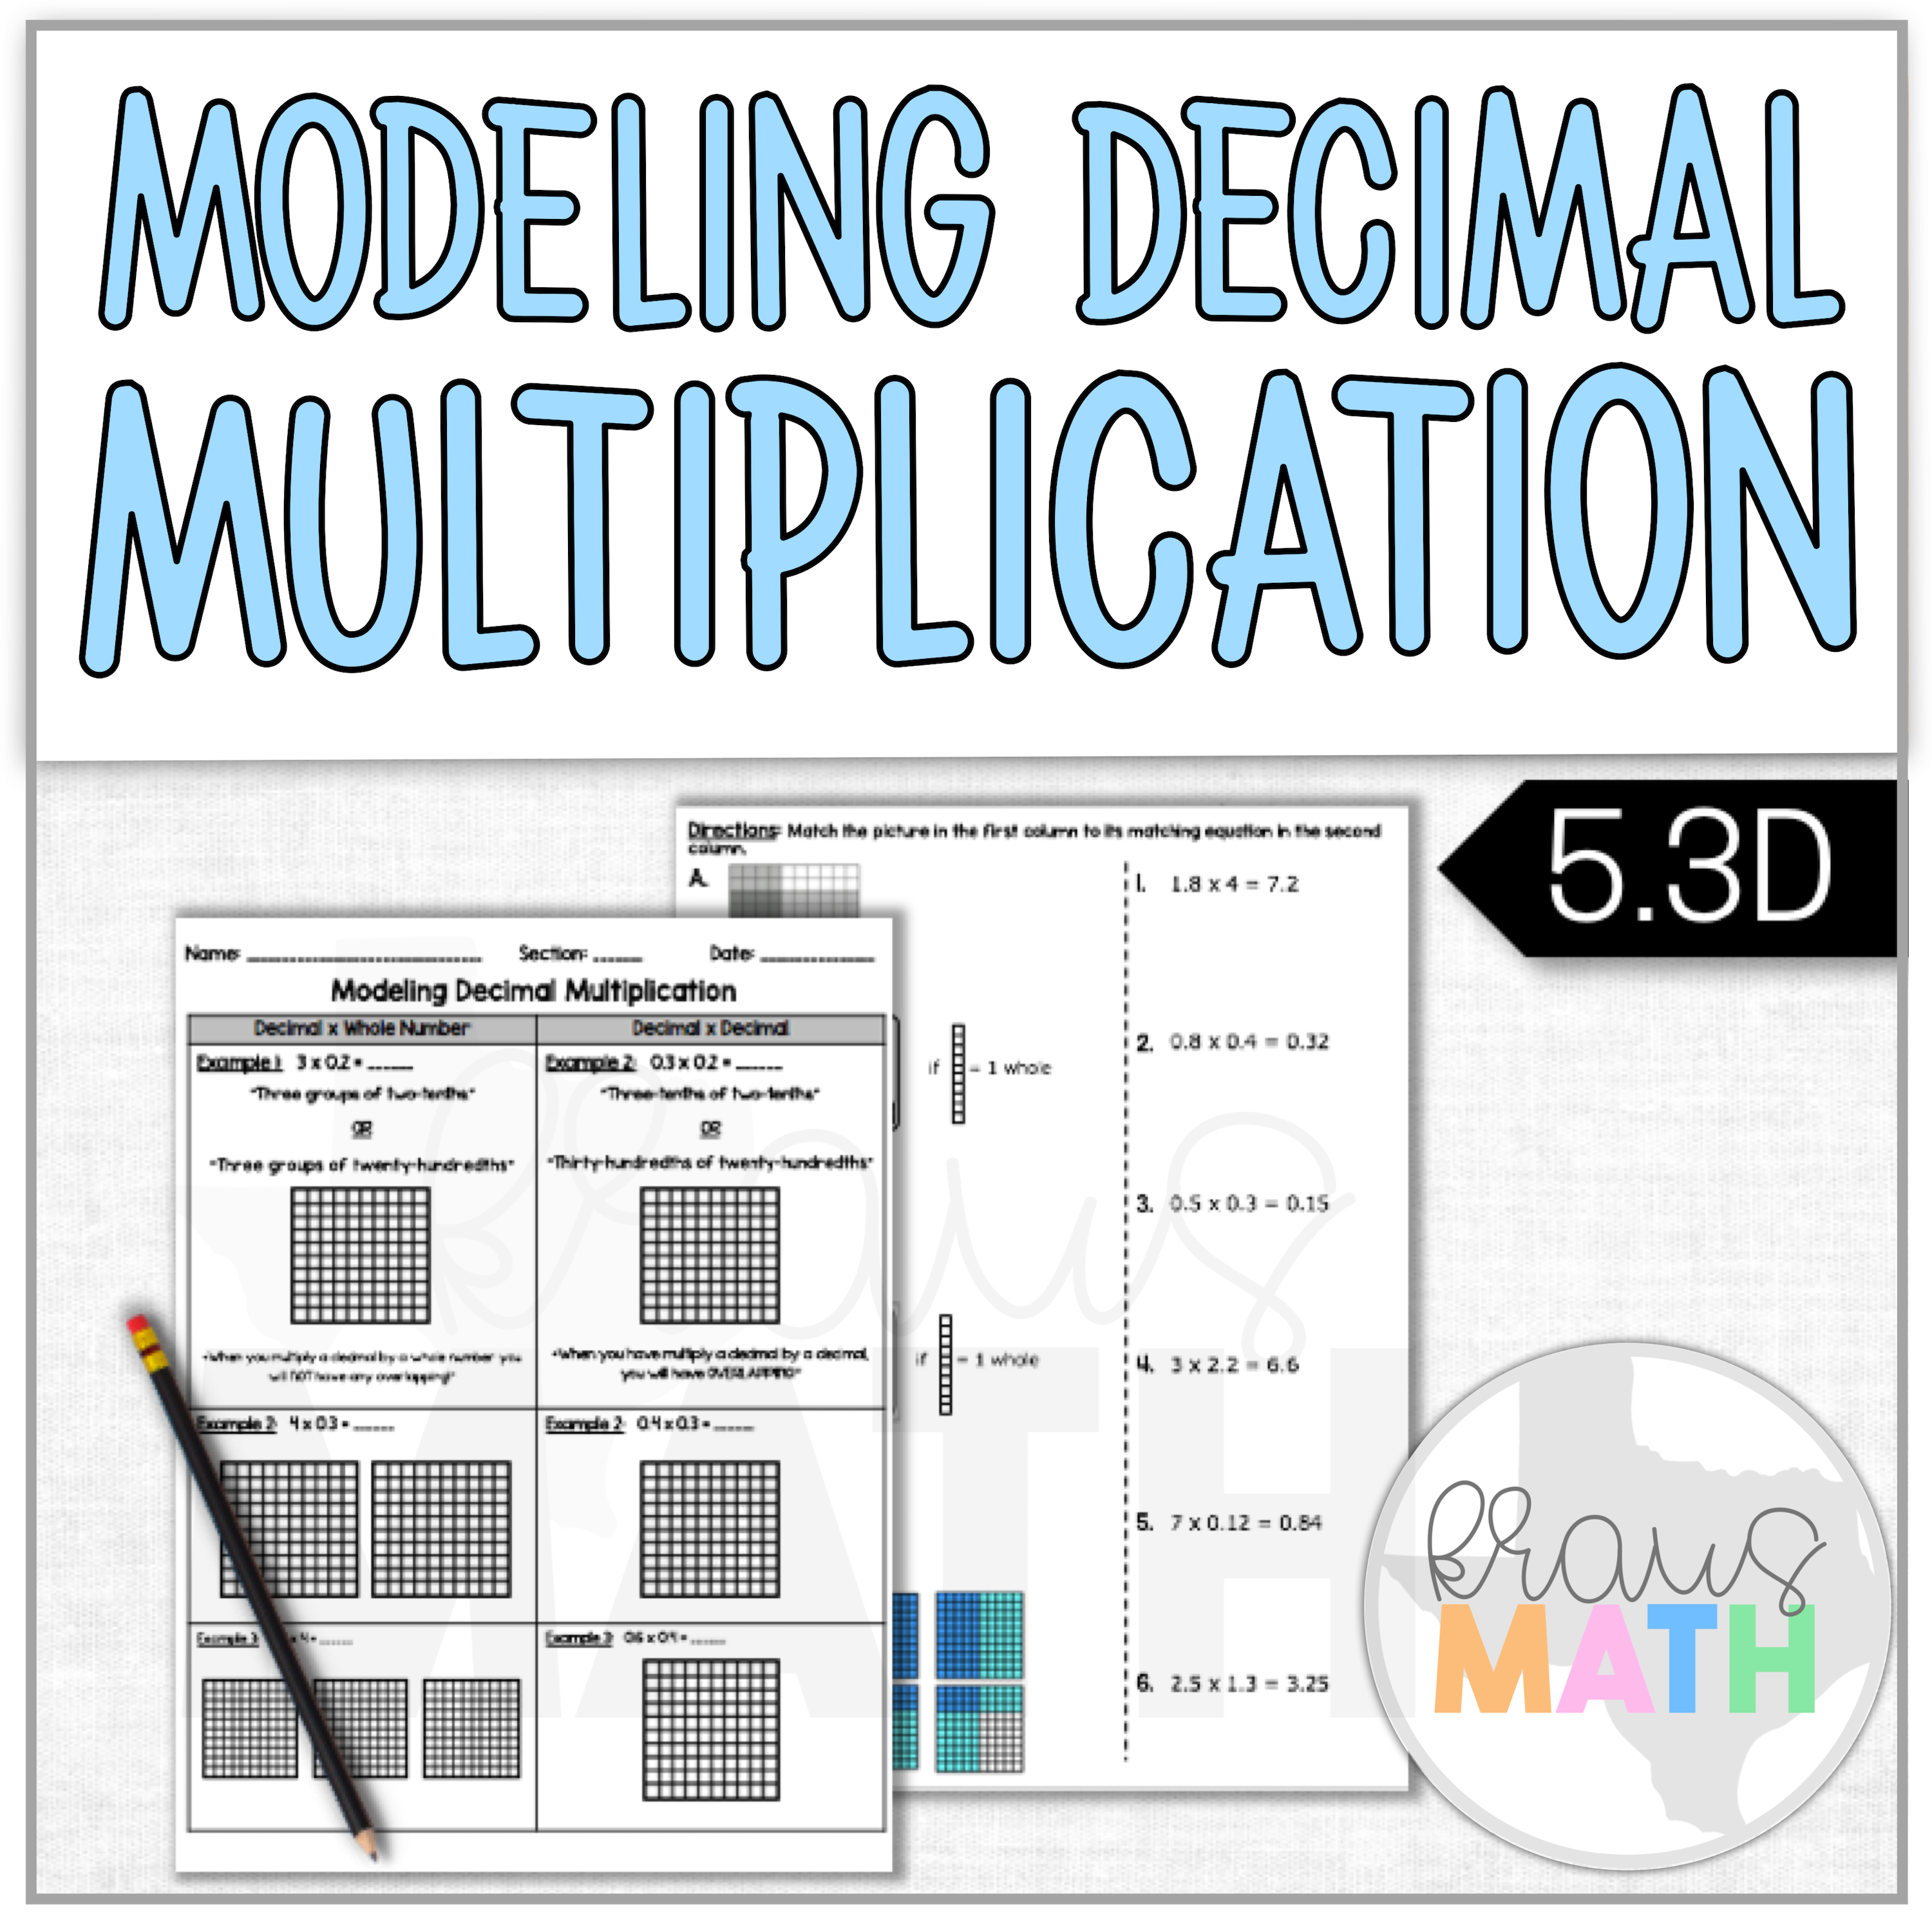 Modeling Decimal Multiplication Notes Worksheet Teks 5 3d Kraus Math Math Interactive Notebook Math Interactive Multiplication Practice